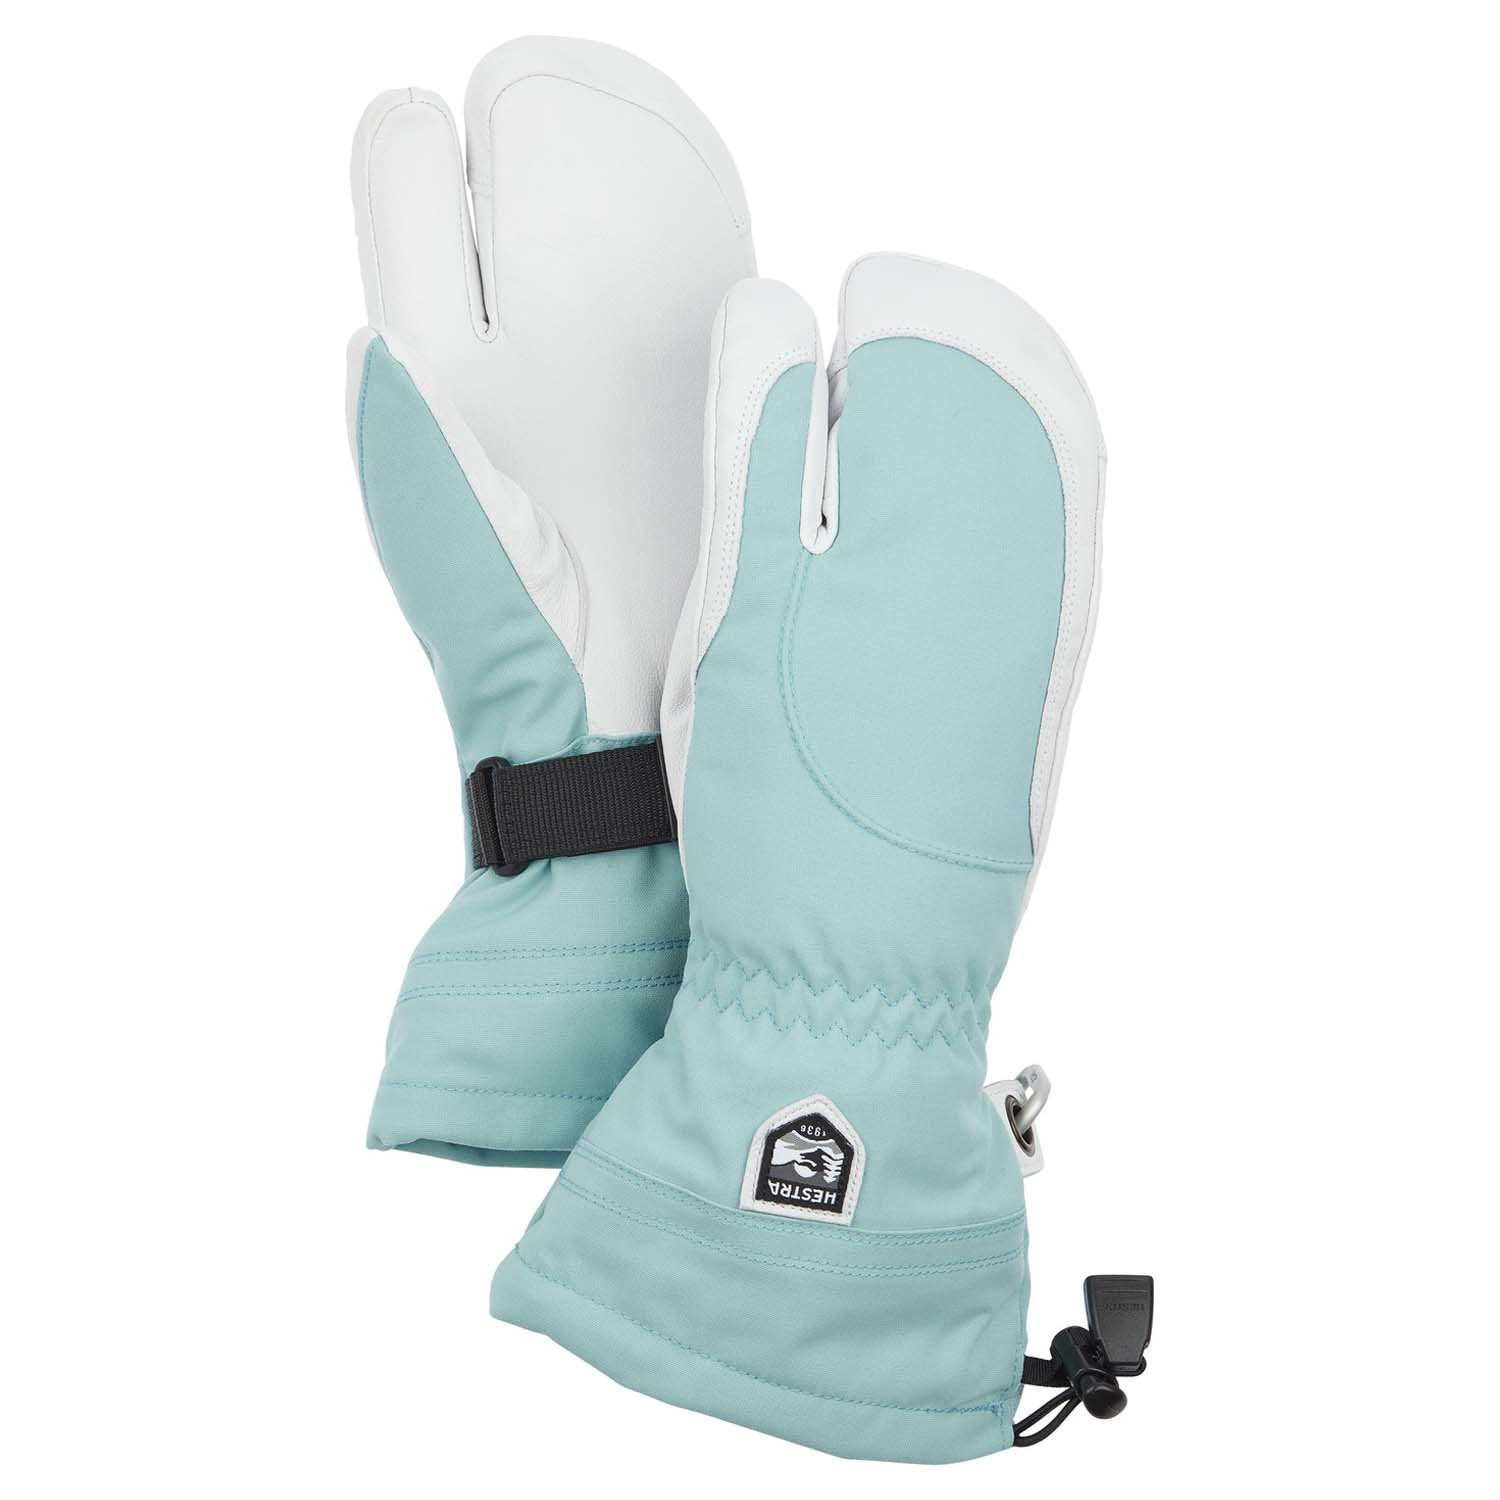 run shoes online store new lifestyle Hestra Heli Ski Womens 3F 2020 | Hestra | Gloves | Snowtrax